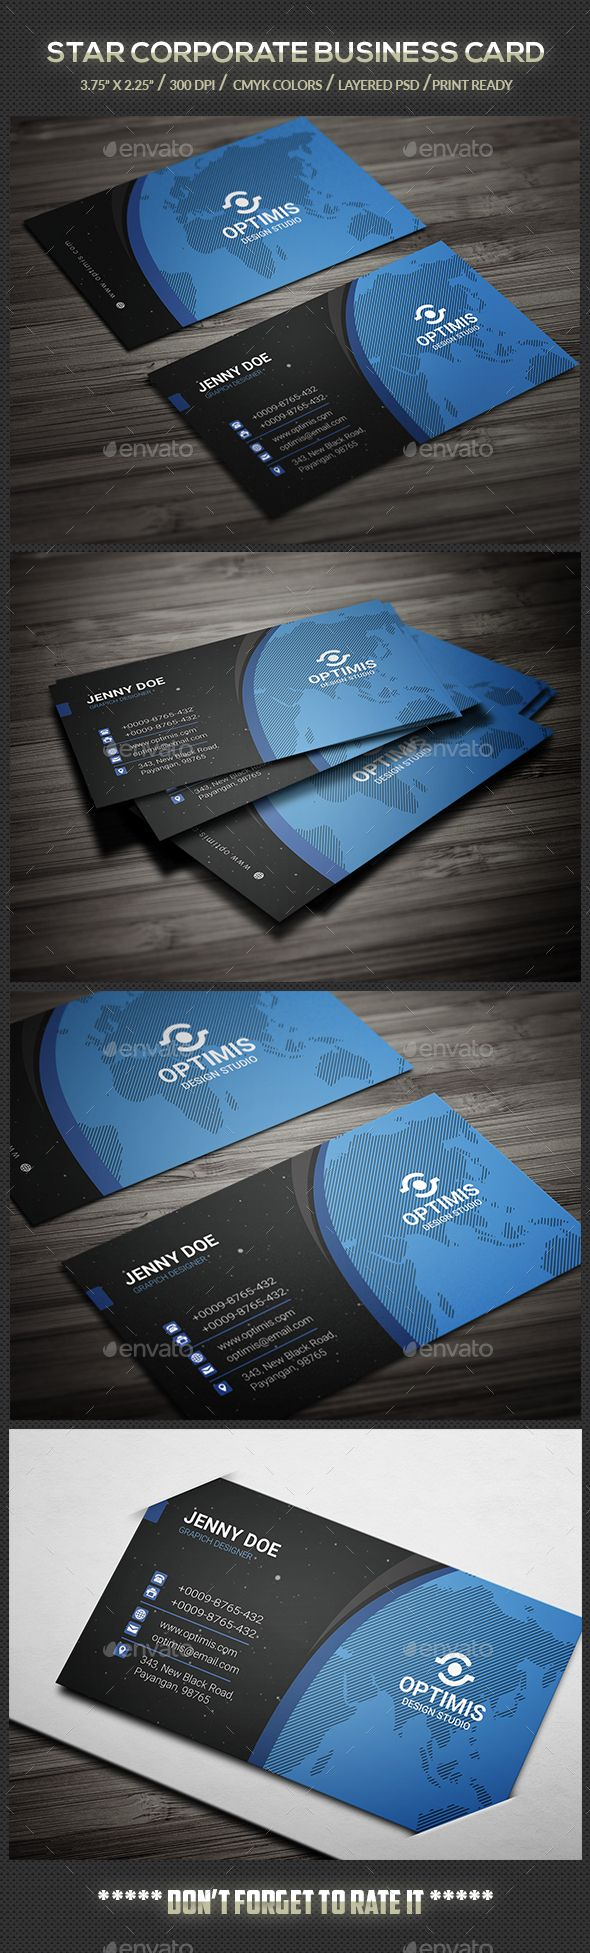 Star Corporate Business Card Template PSD #design Download: http://graphicriver.net/item/star-corporate-business-card/13872122?ref=ksioks